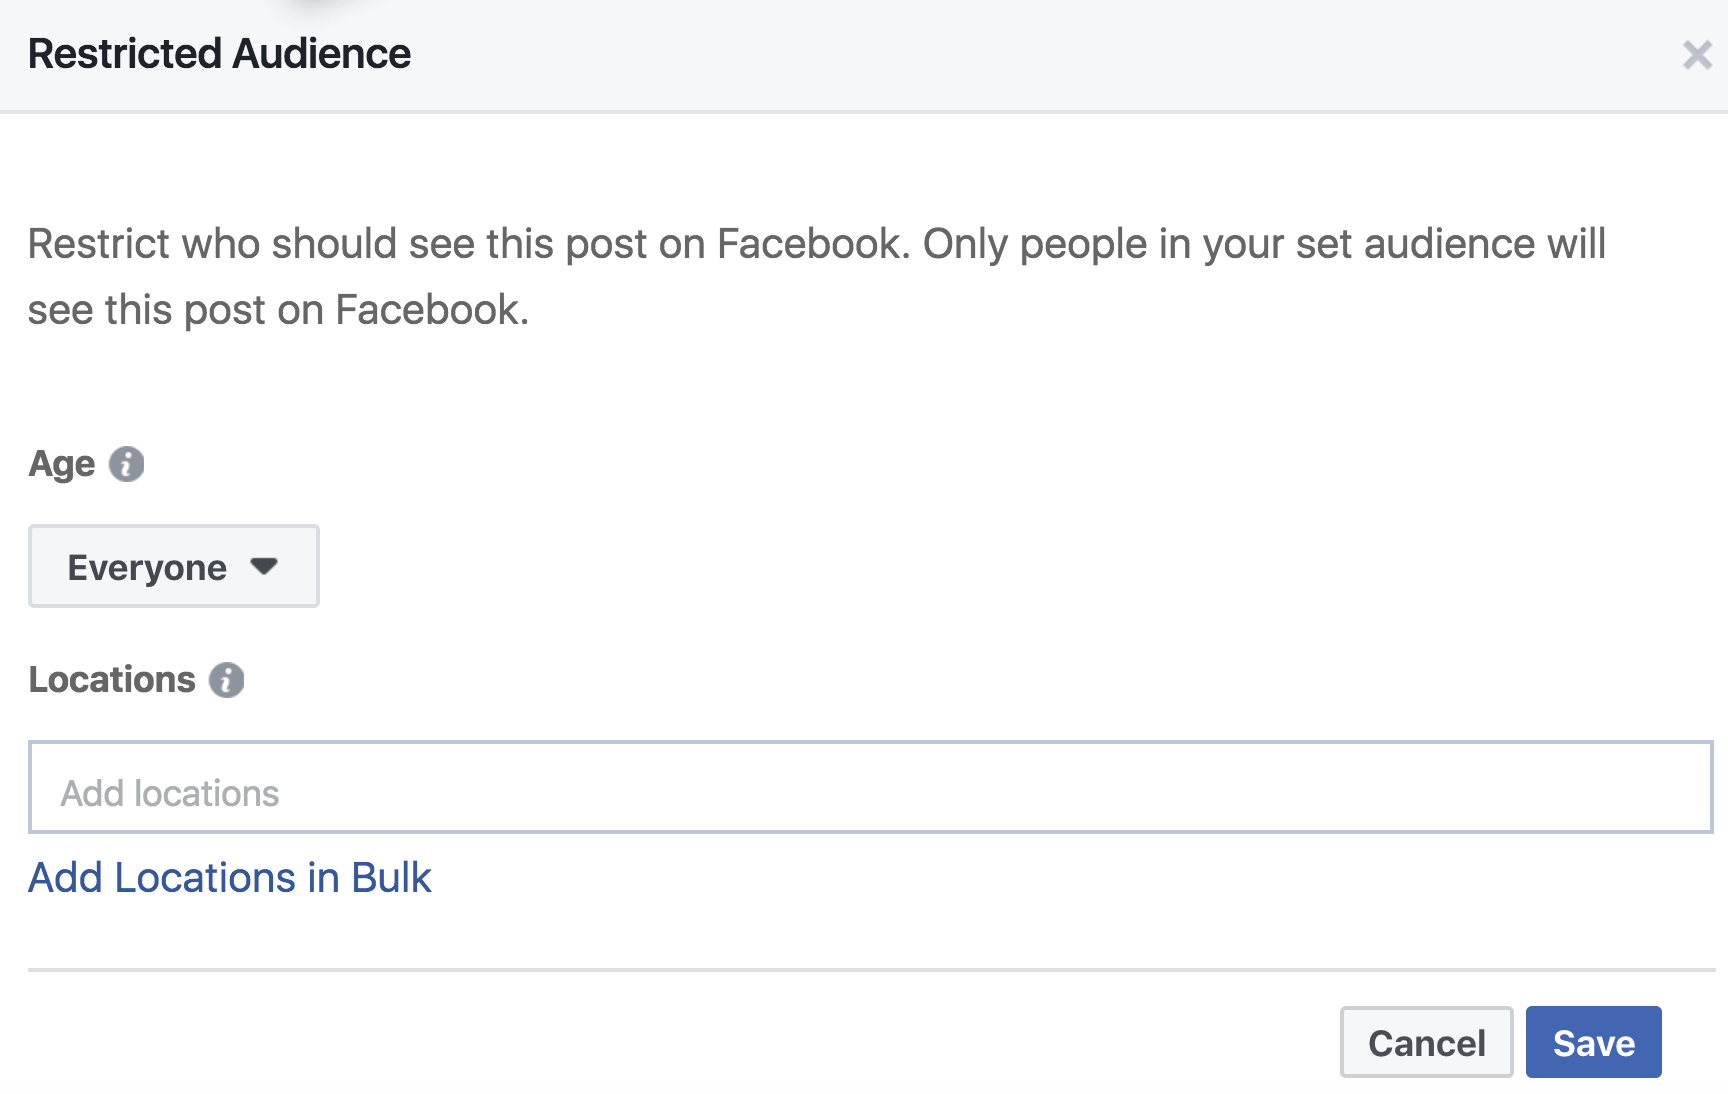 Facebook Publishing Tools Audience Restriction Entry Screen